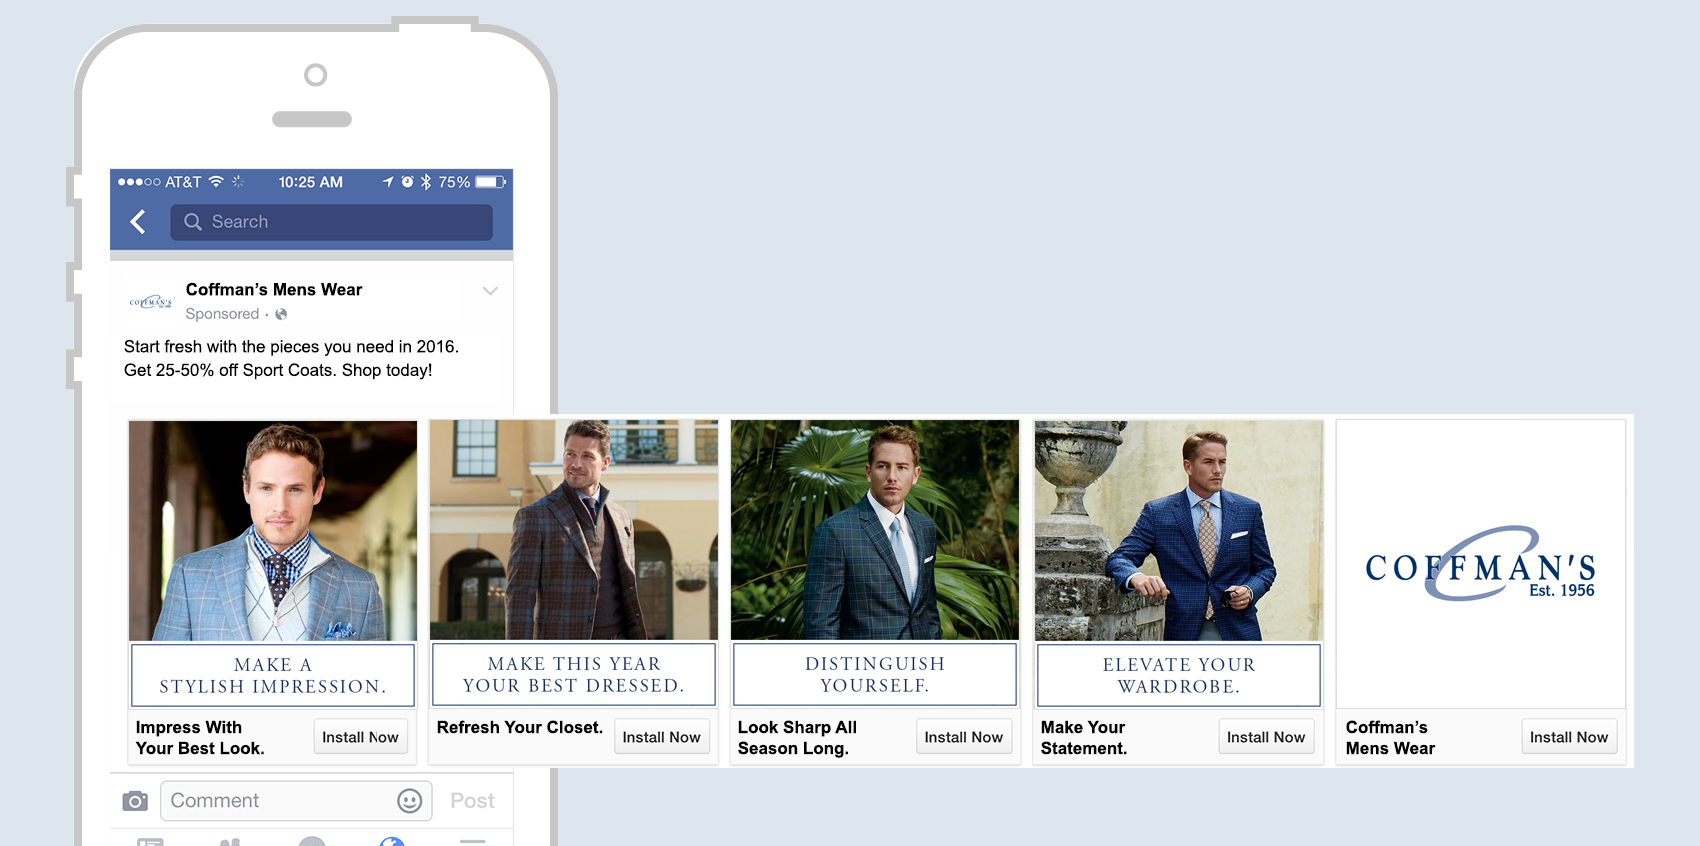 Coffman's Mens Wear Facebook Carousel advertisement